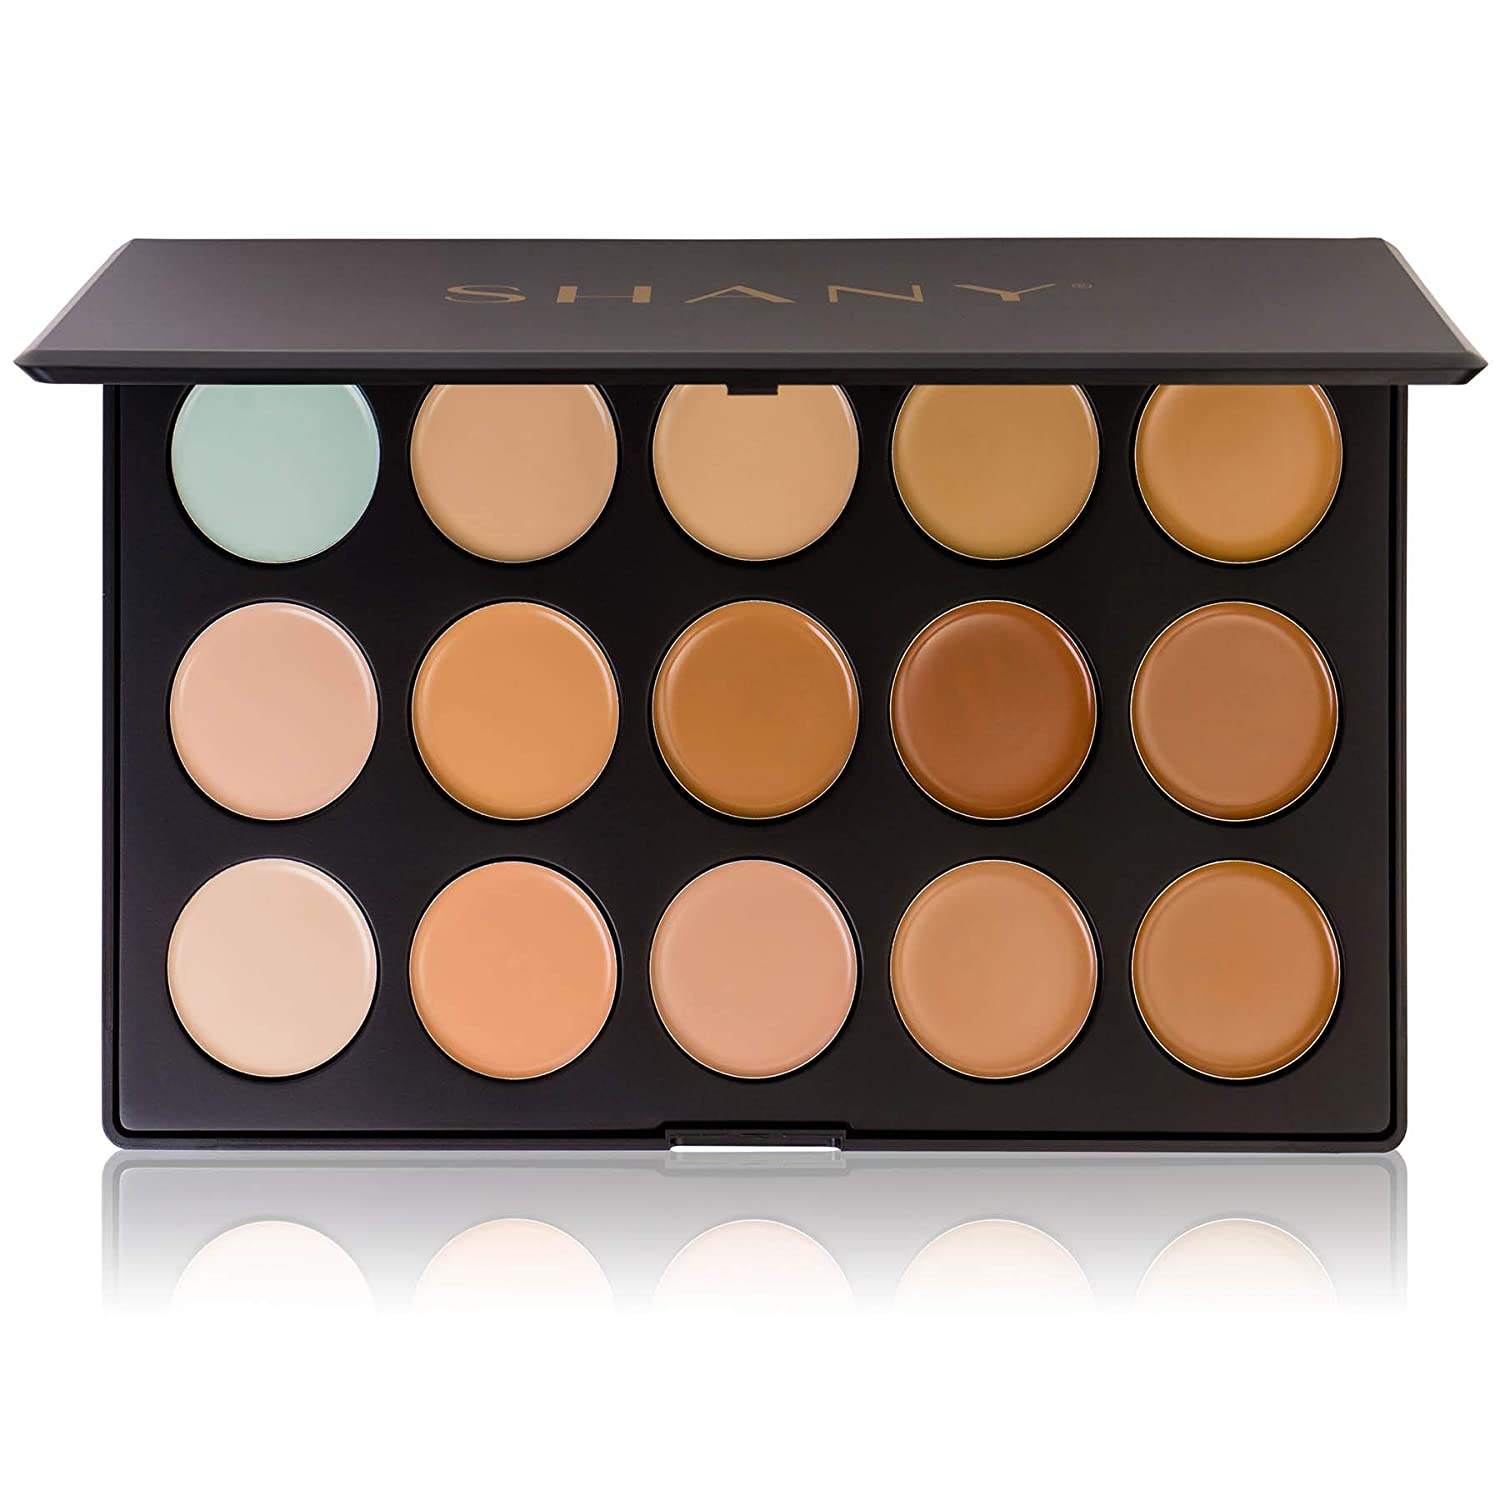 SHANY Professional Cream Foundation and Camouflage Concealer - 15 Color Palette